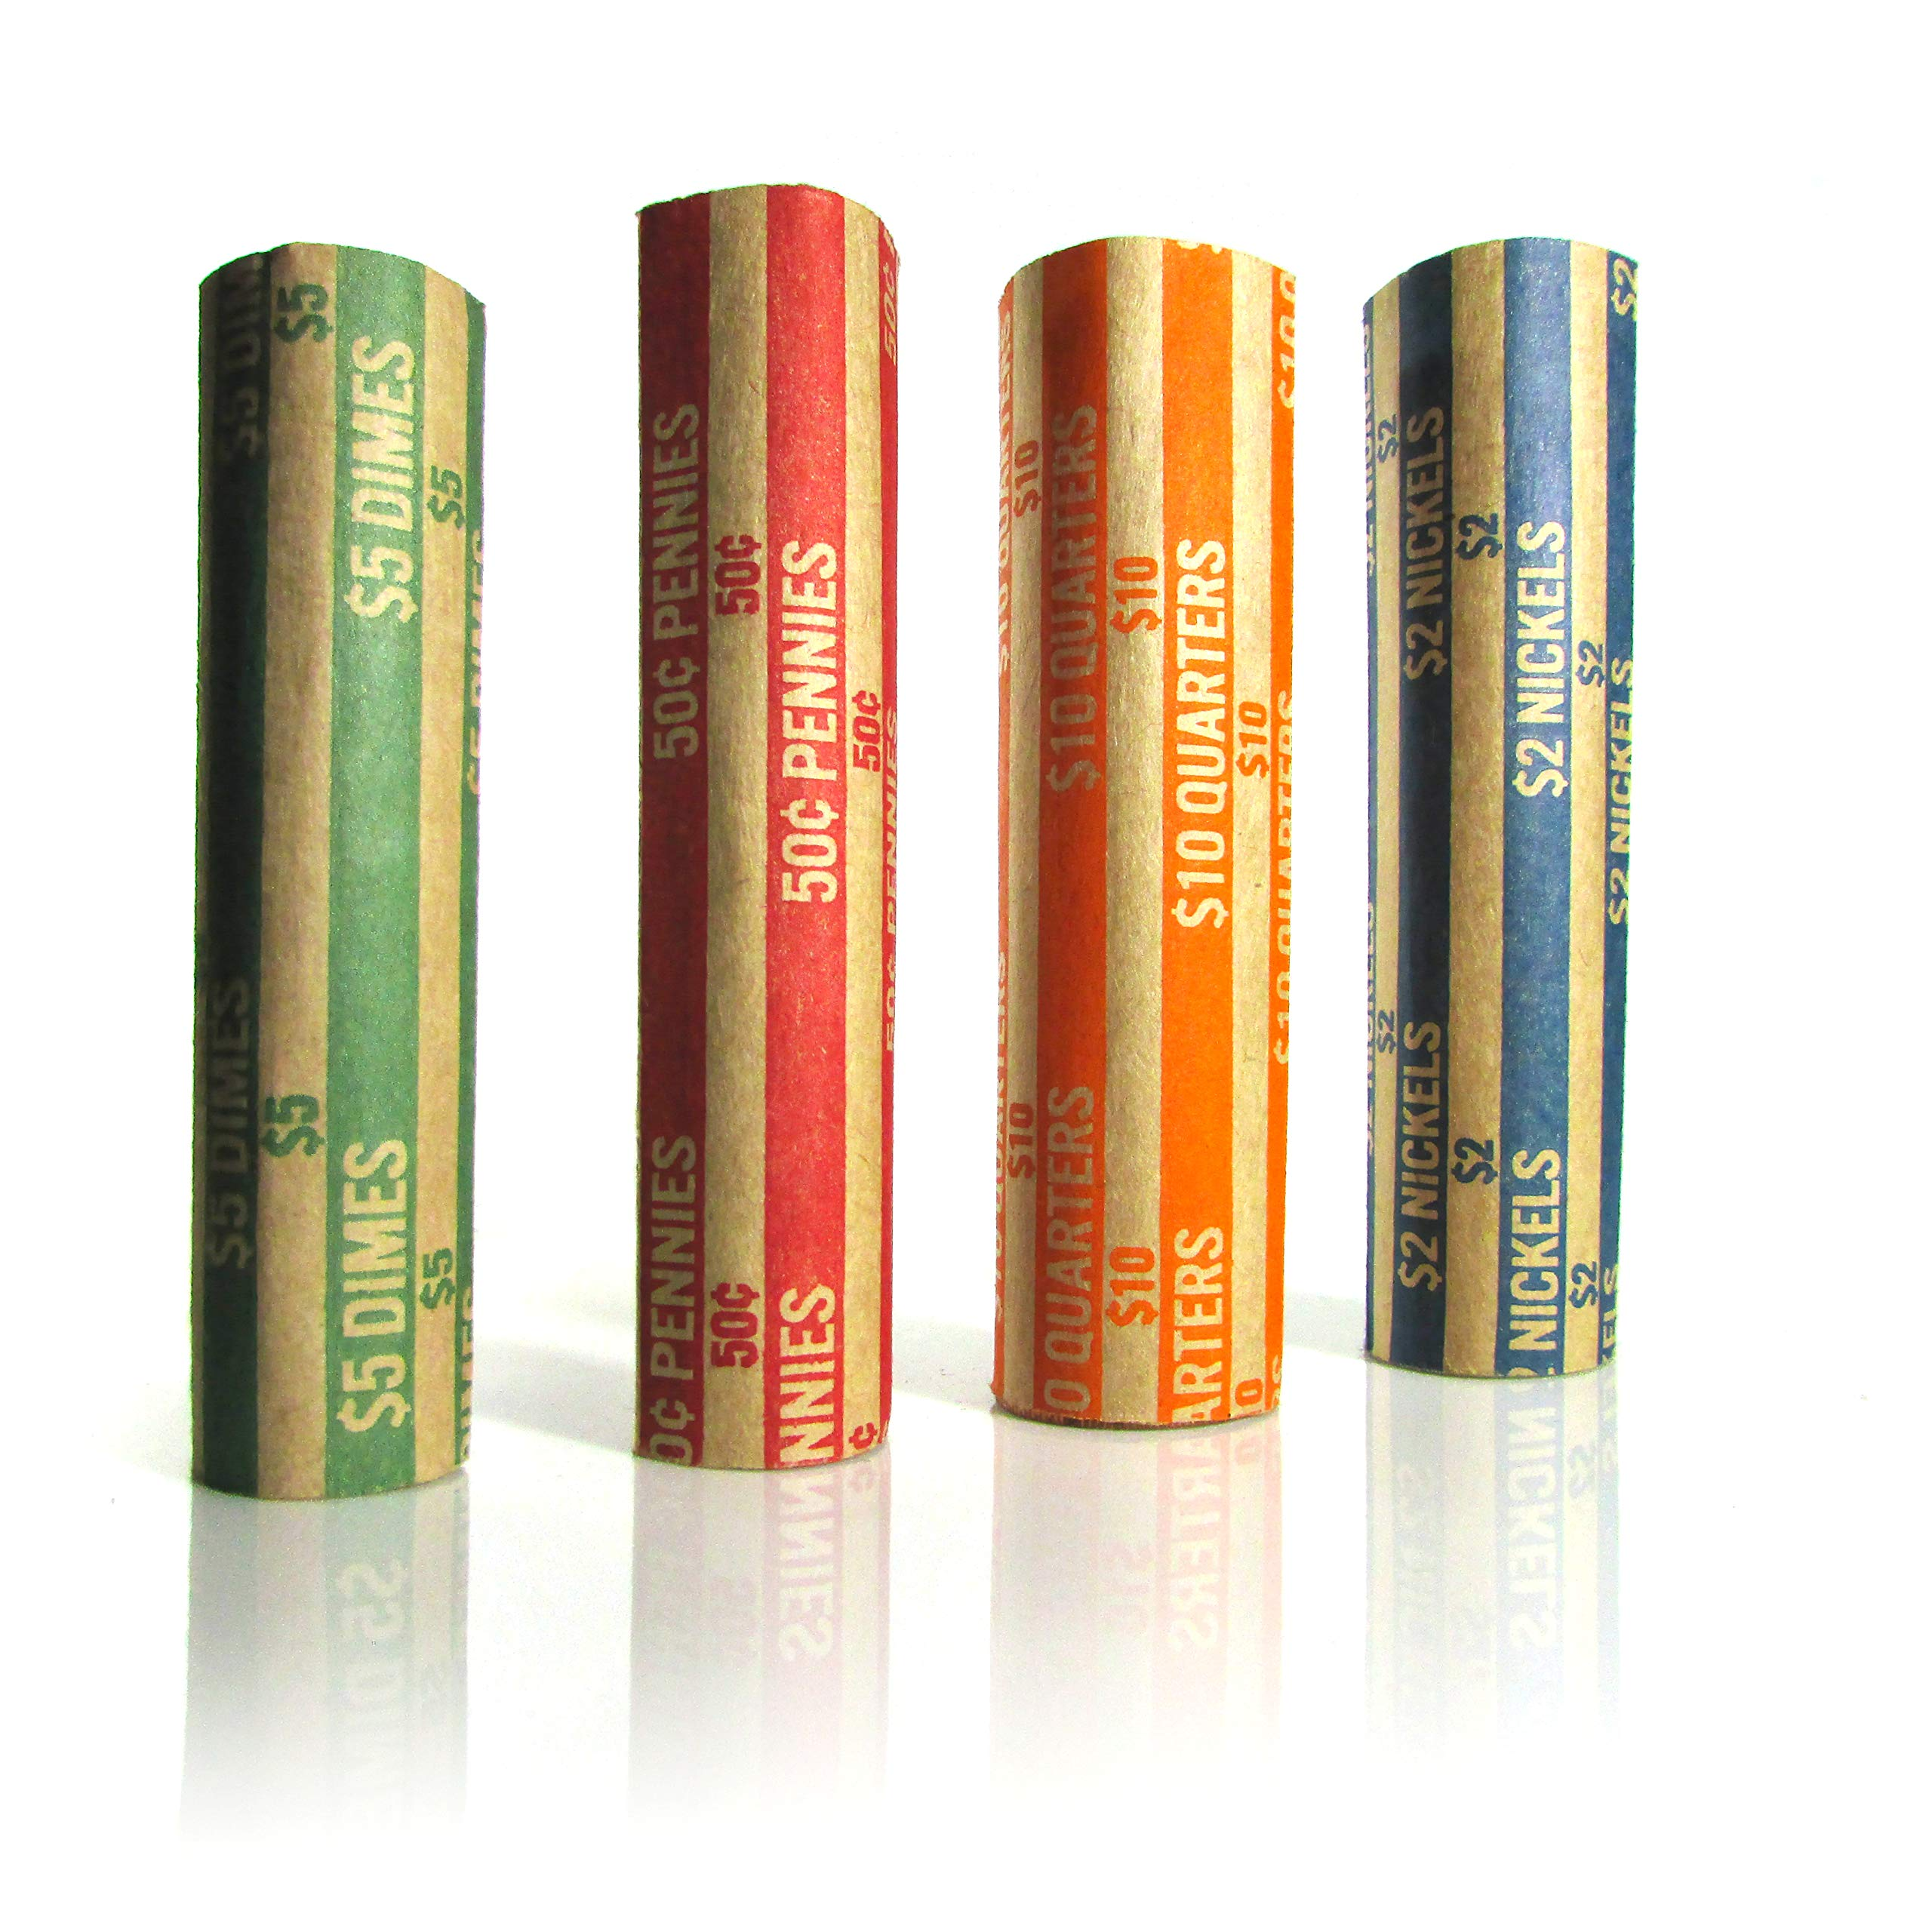 600 Coin Rolls Wrappers Packed and Assorted, 150 of Each |Quarters, Dimes, Nickels, Pennies|, ABA Color-Coded Kraft Paper Coin Money Organizers